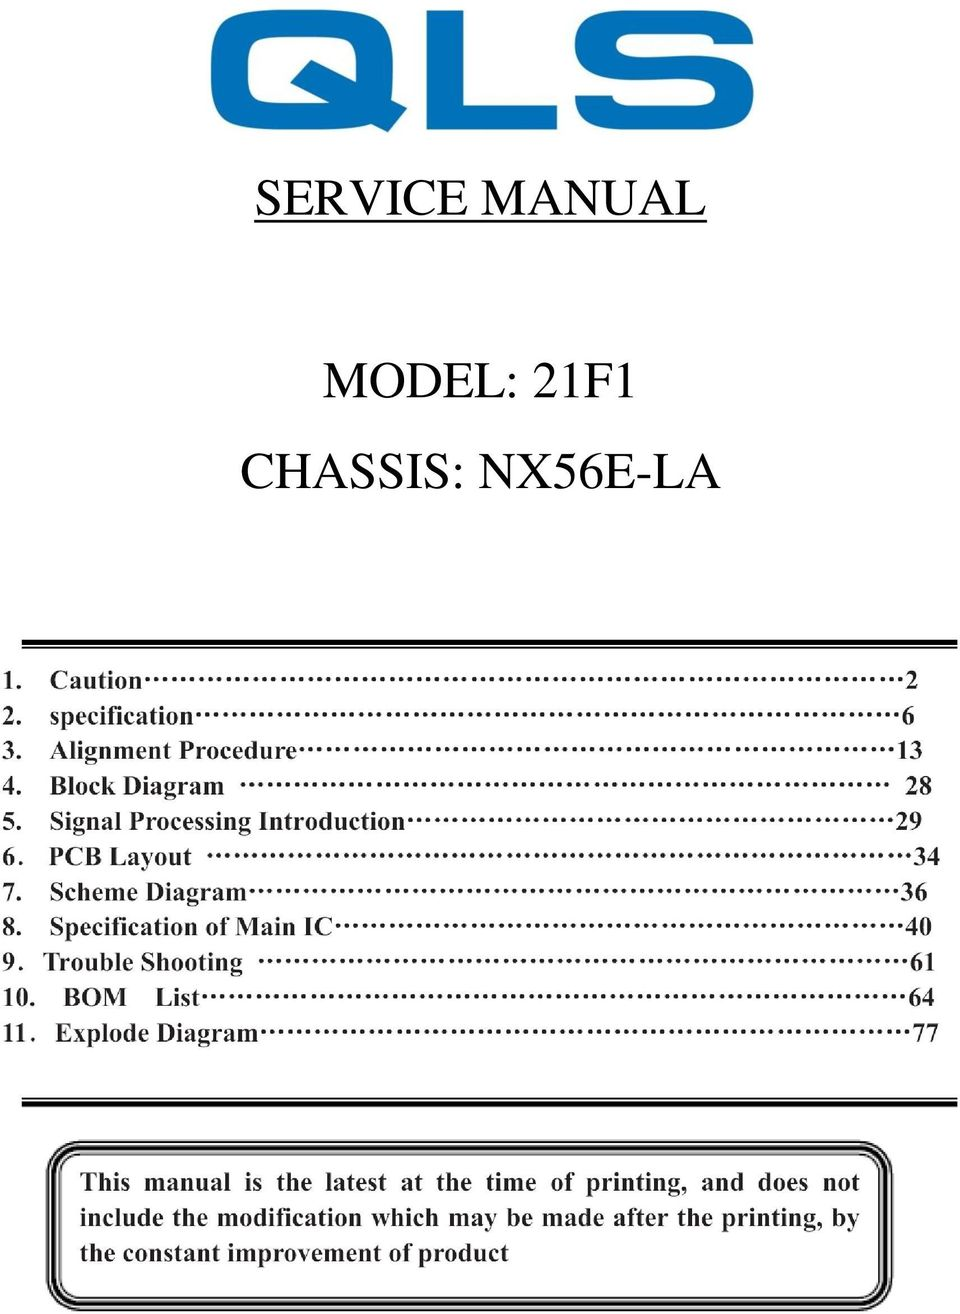 Service Manual Model 21f1 Chassis Nx56e La Pdf Printed Circuit Board Shot From Above And Radiation Warning Sign 2 1 Caution Use Of Controls Adjustments Or Procedures Other Than Those Specified Herein May Result In Hazardous Exposure